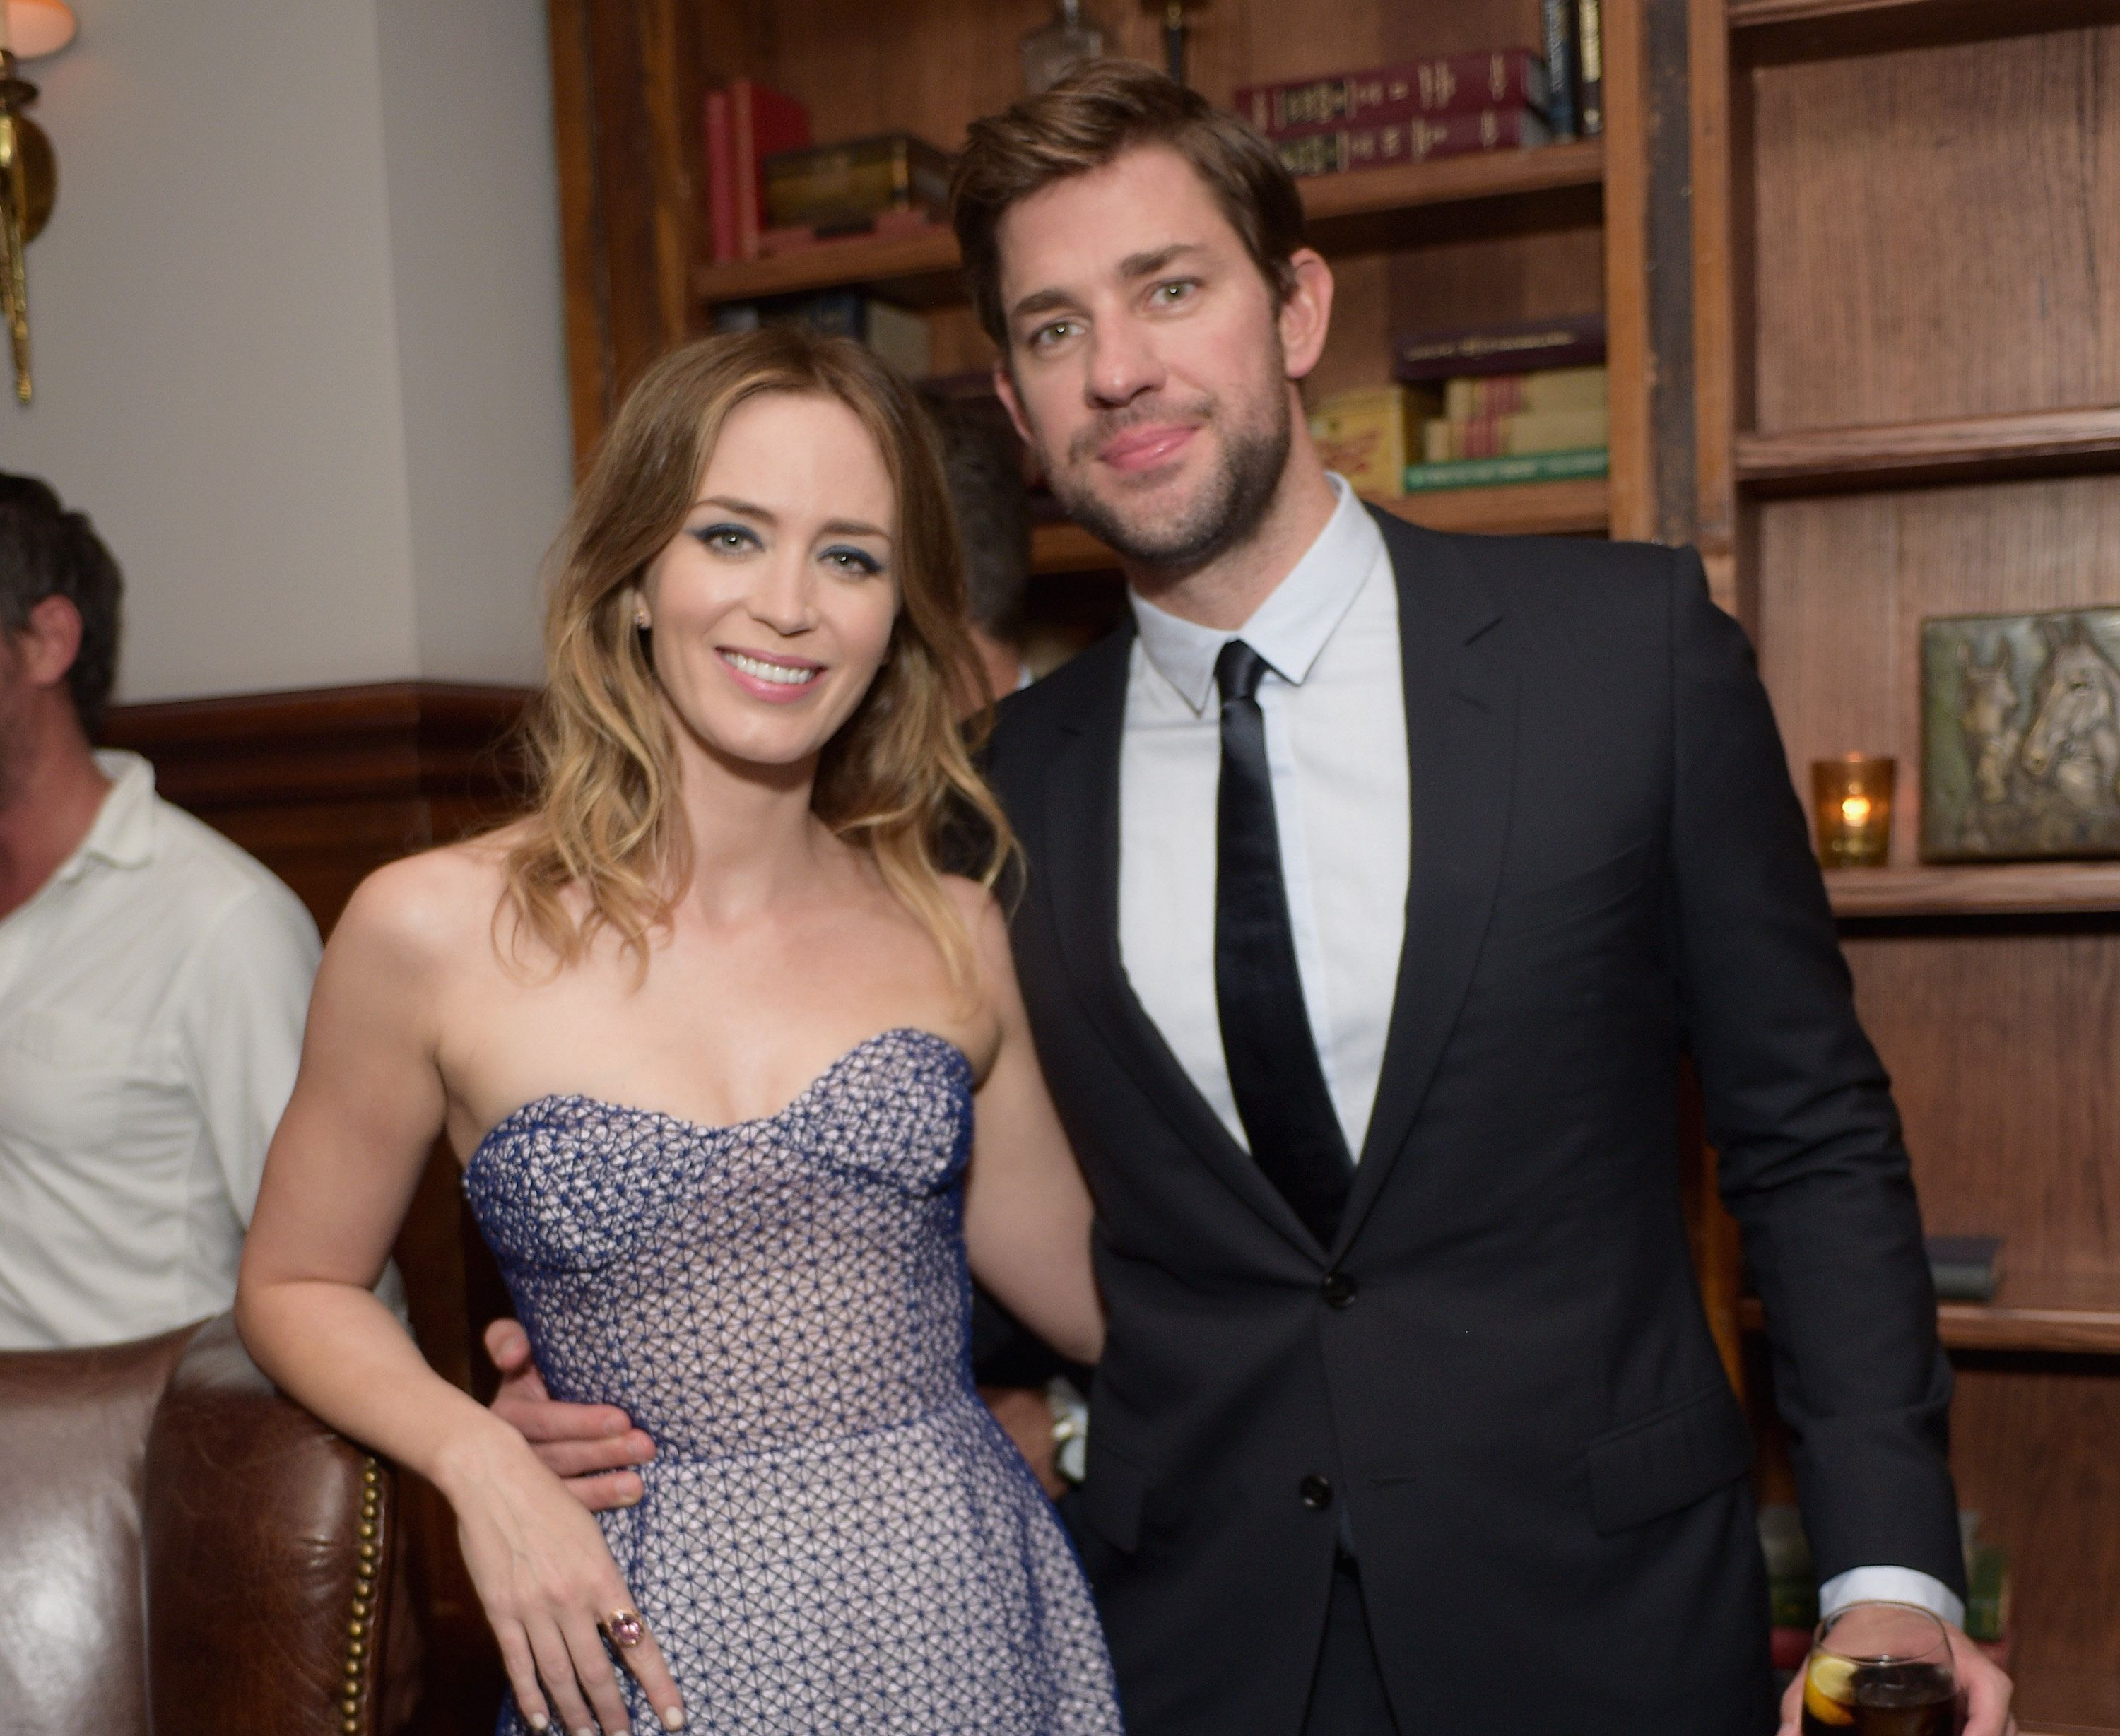 TORONTO, ON - SEPTEMBER 11:  Actors Emily Blunt (L) and John Krasinski attend the Sicario TIFF party hosted by GREY GOOSE Vodka and Soho Toronto at Soho House Toronto on September 11, 2015 in Toronto, Canada.  (Photo by Stefanie Keenan/Getty Images for Grey Goose Vodka)